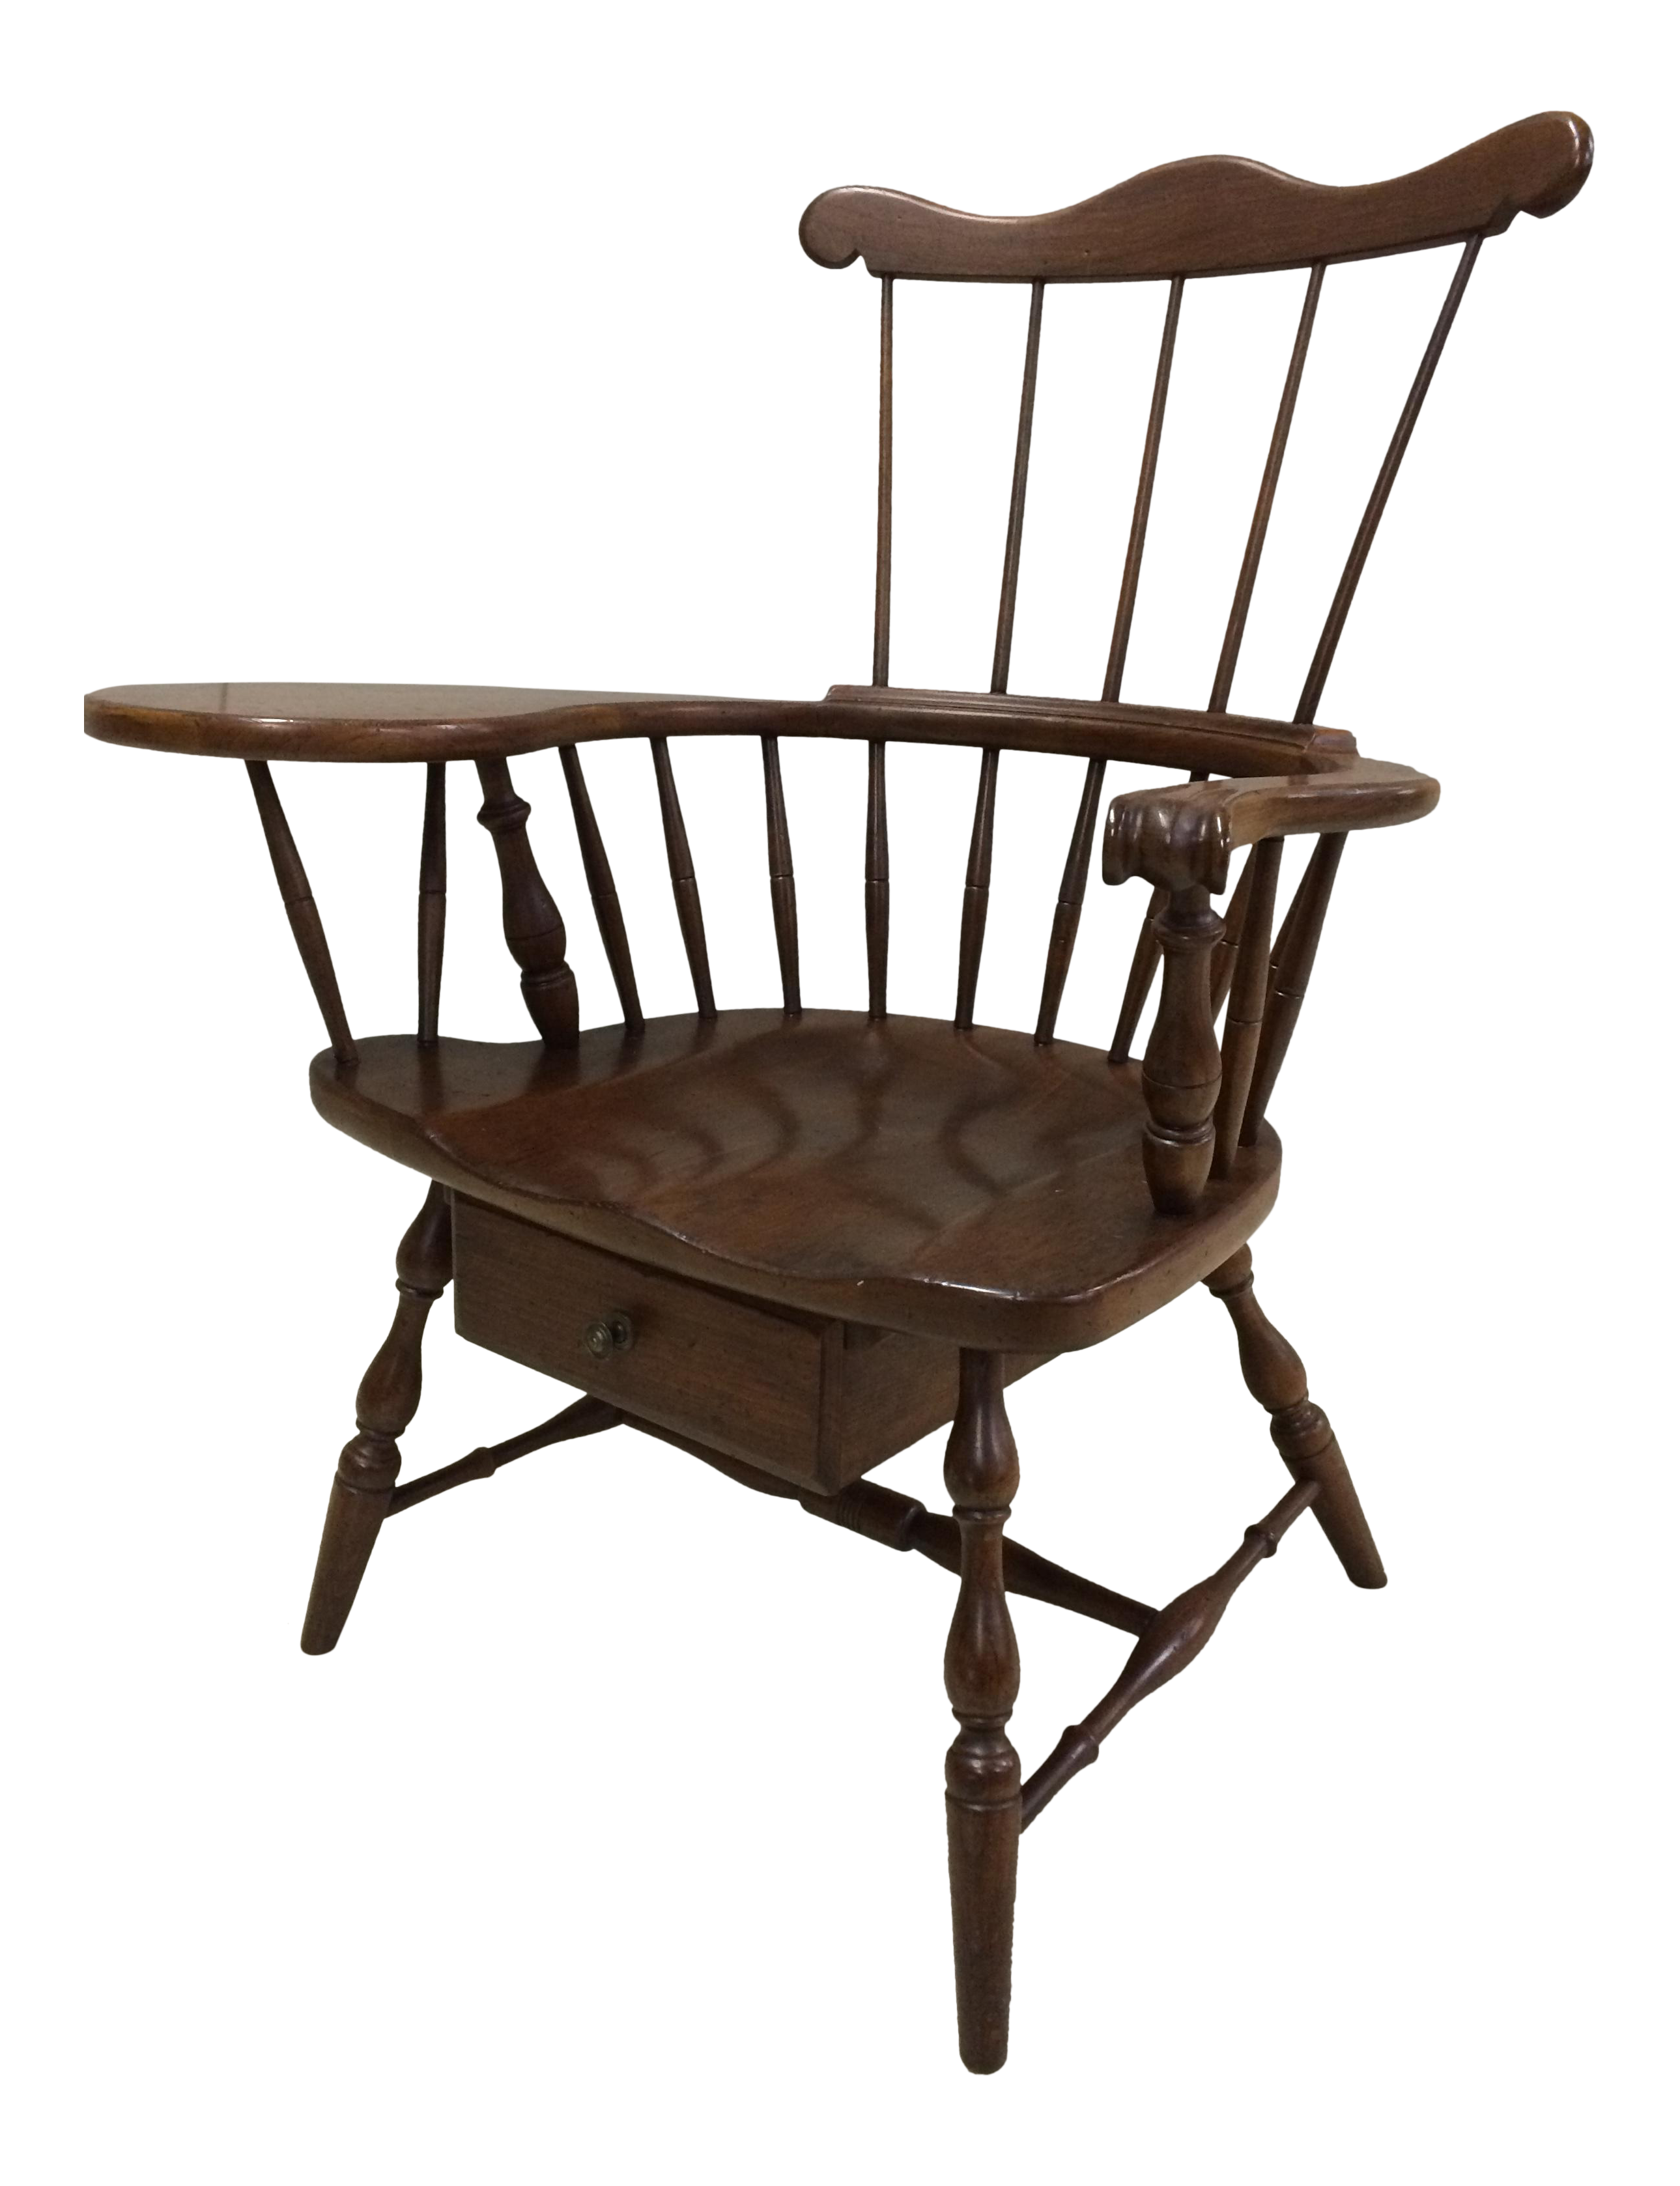 Queen anne chair history - Pennsylvania House Comb Back Windsor Writing Chair